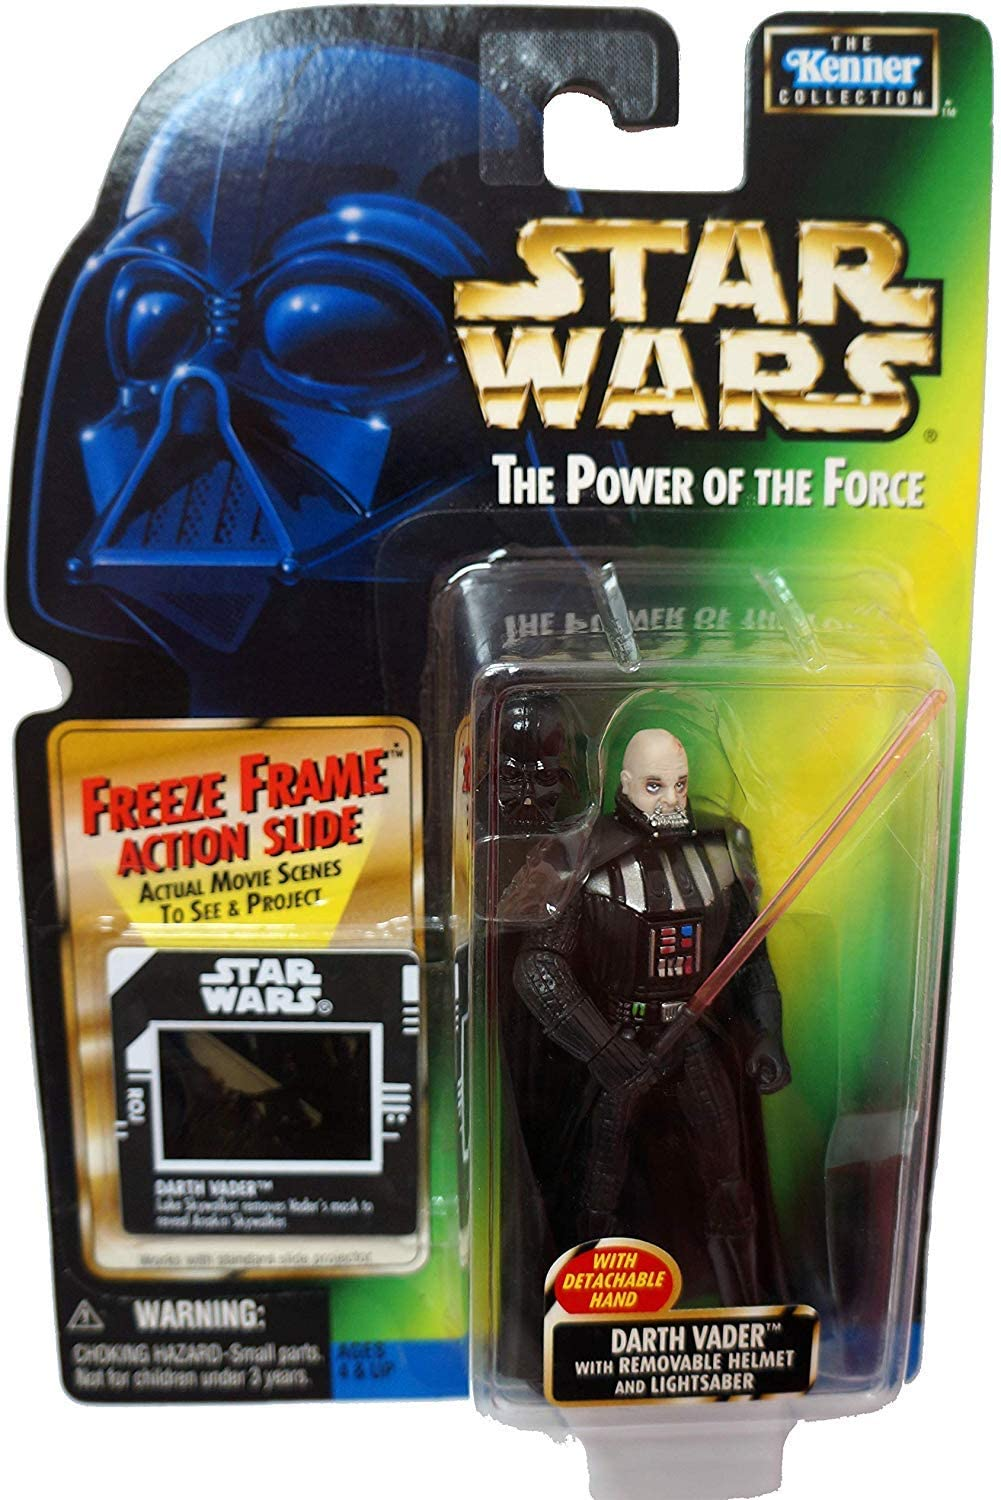 Star Wars Year 1997 The Power of the Force 4 Inch Tall Action Figure